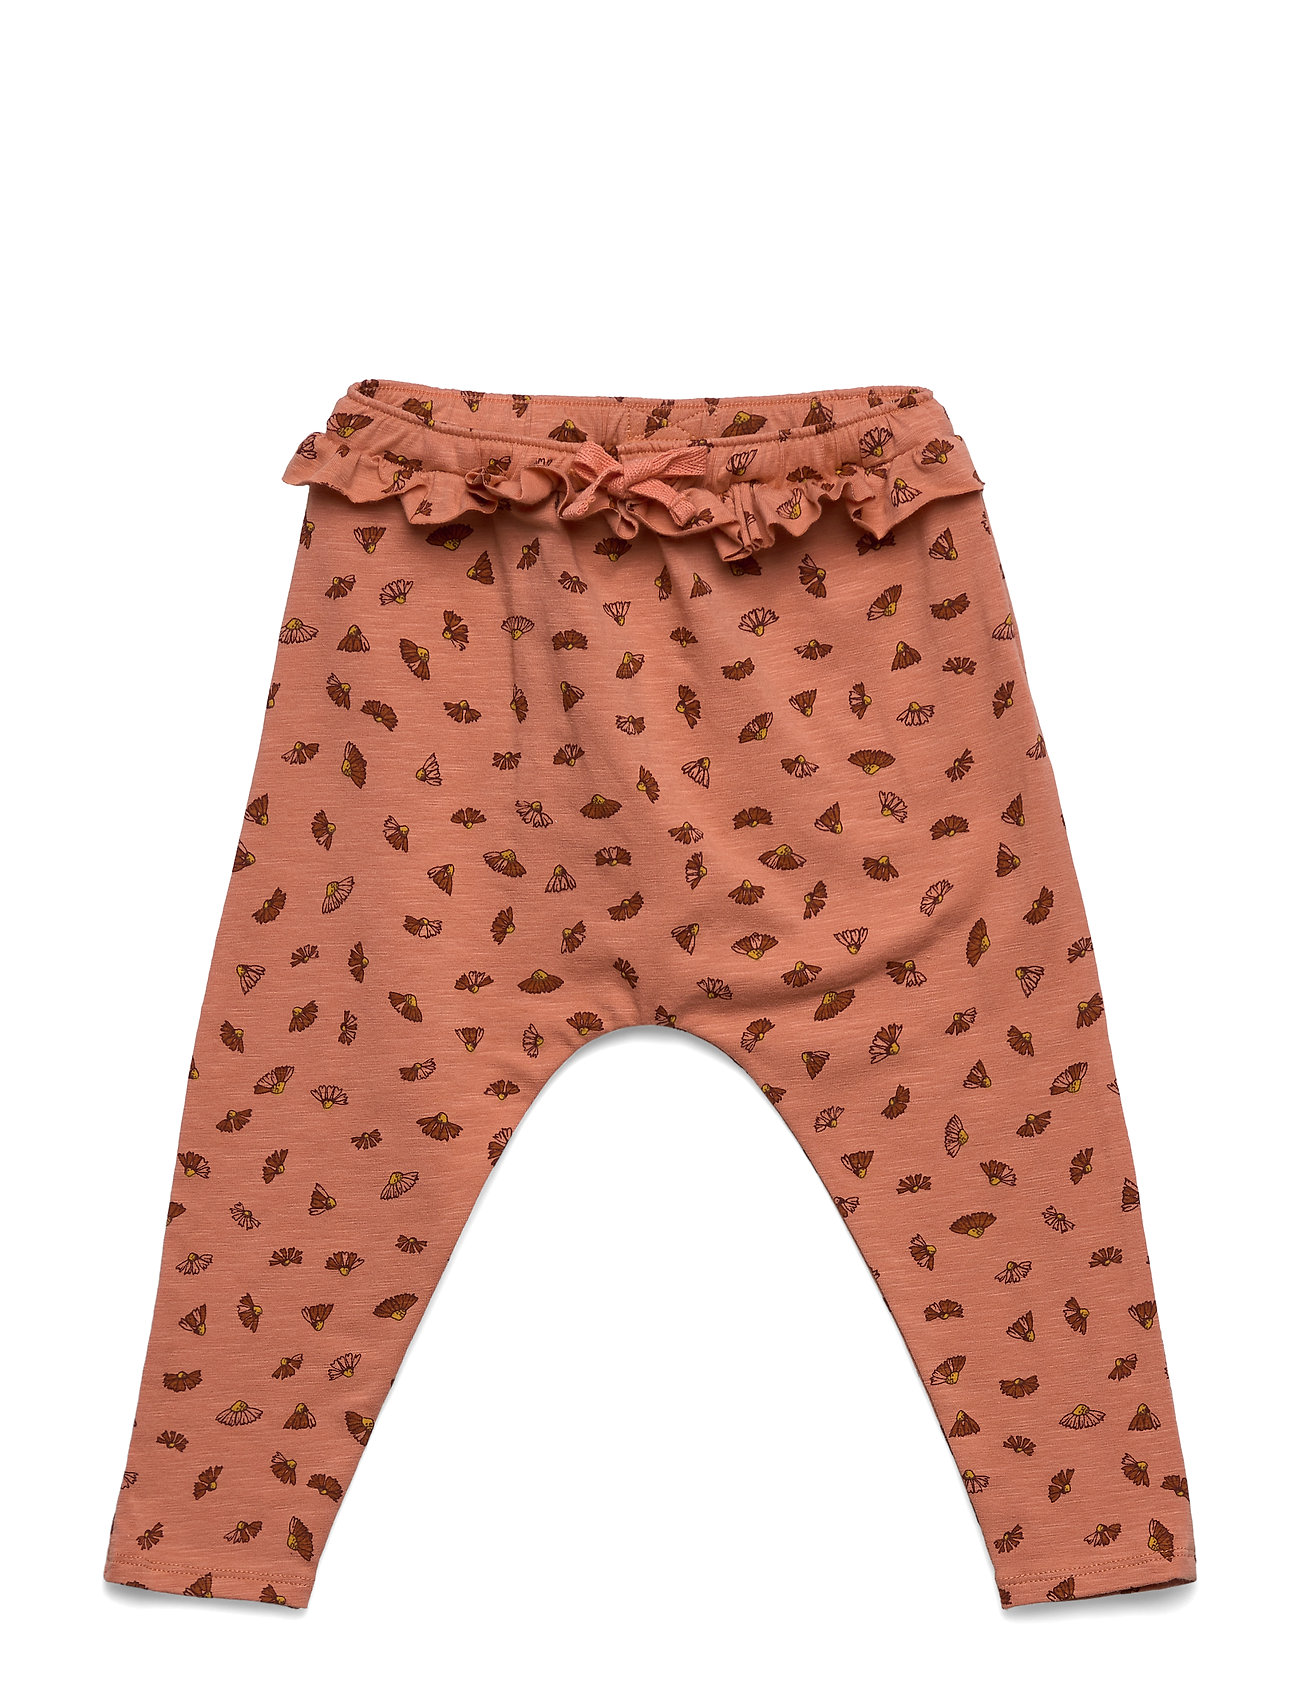 Soft Gallery Cami Pants - TAWNY ORANGE, AOP CAMOMILE S